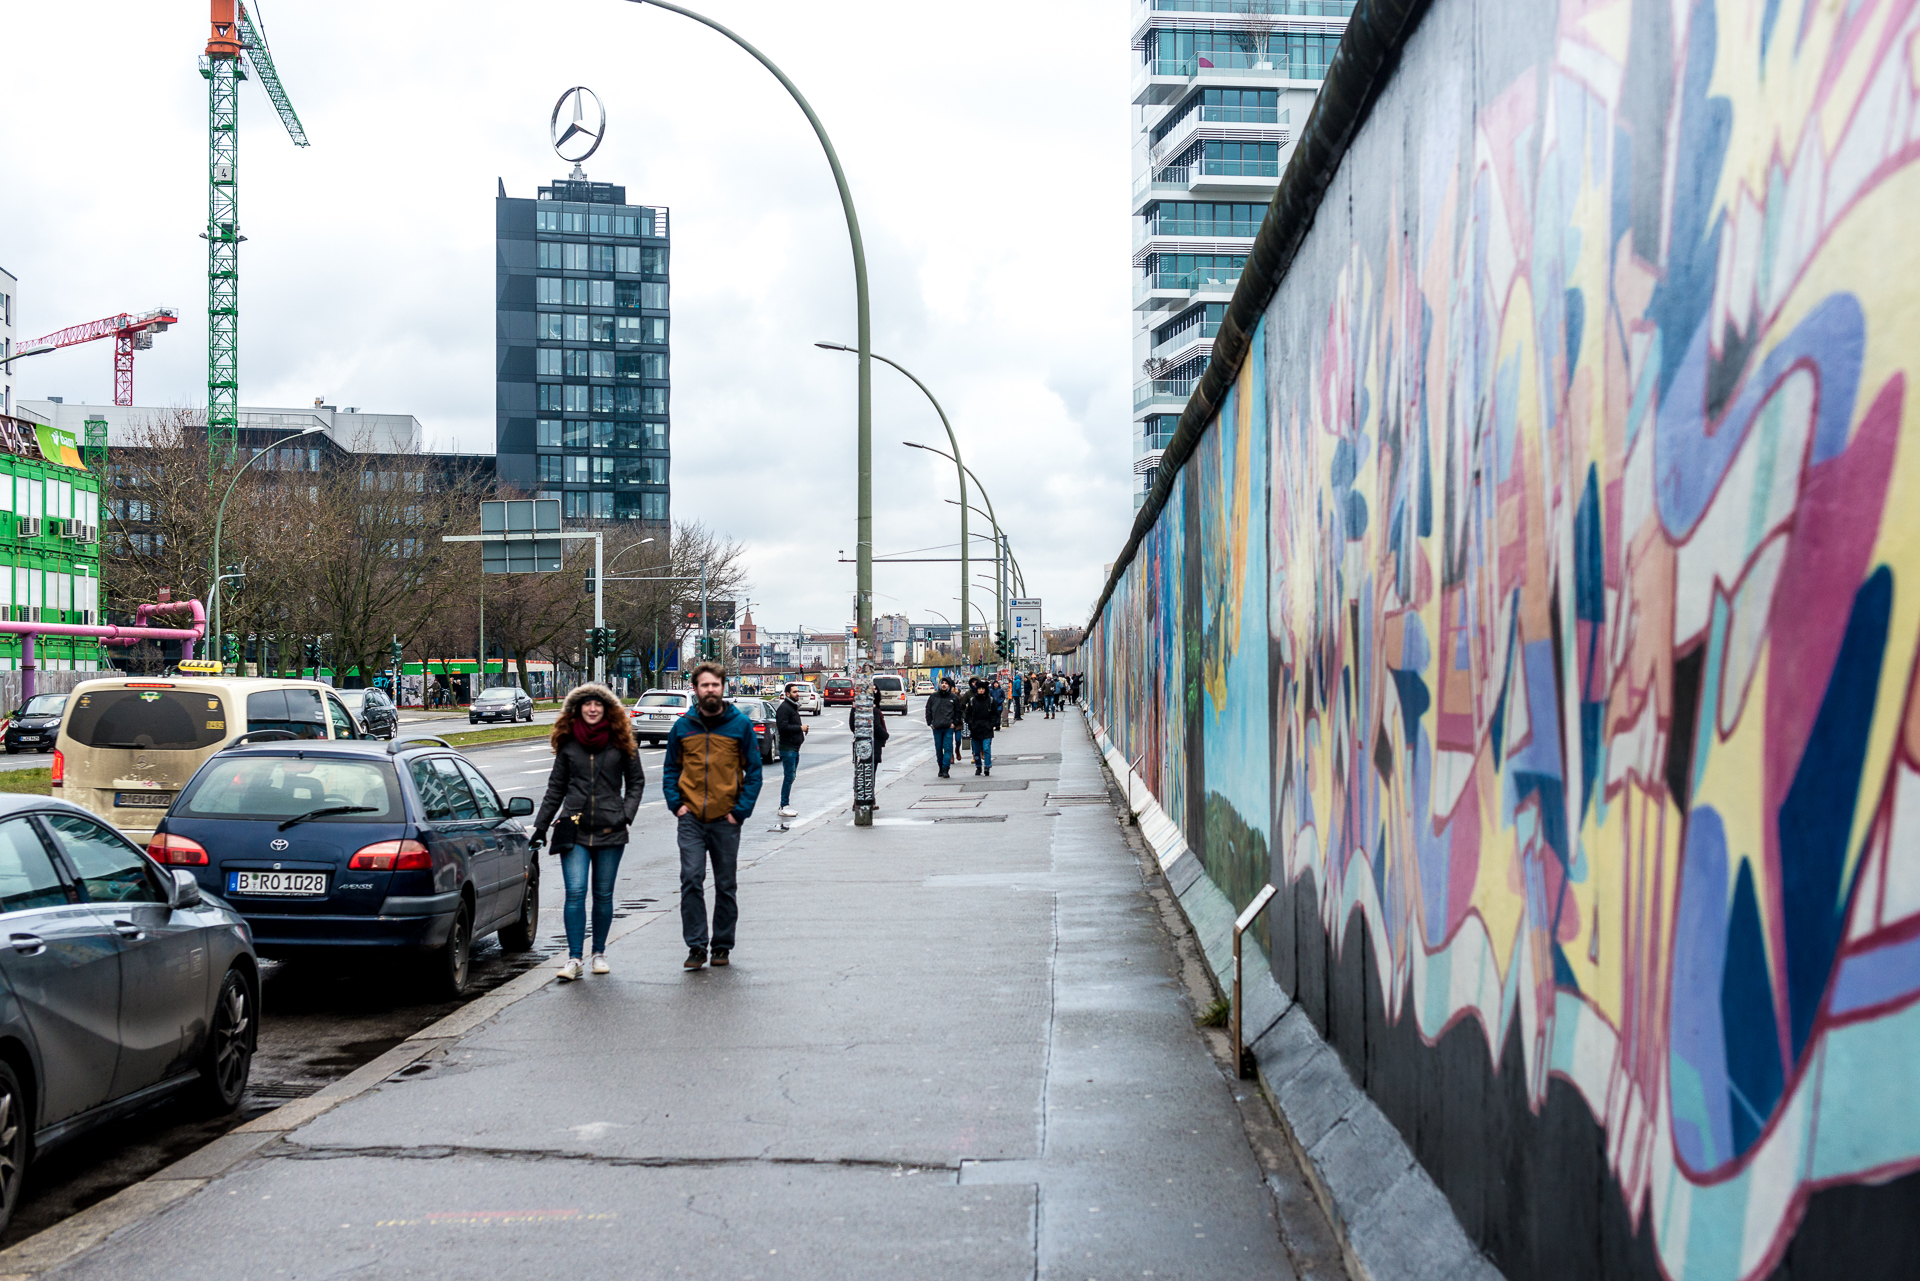 A photo showing the great length of the East Side Gallery and the different paintings on it in Berlin, Germany